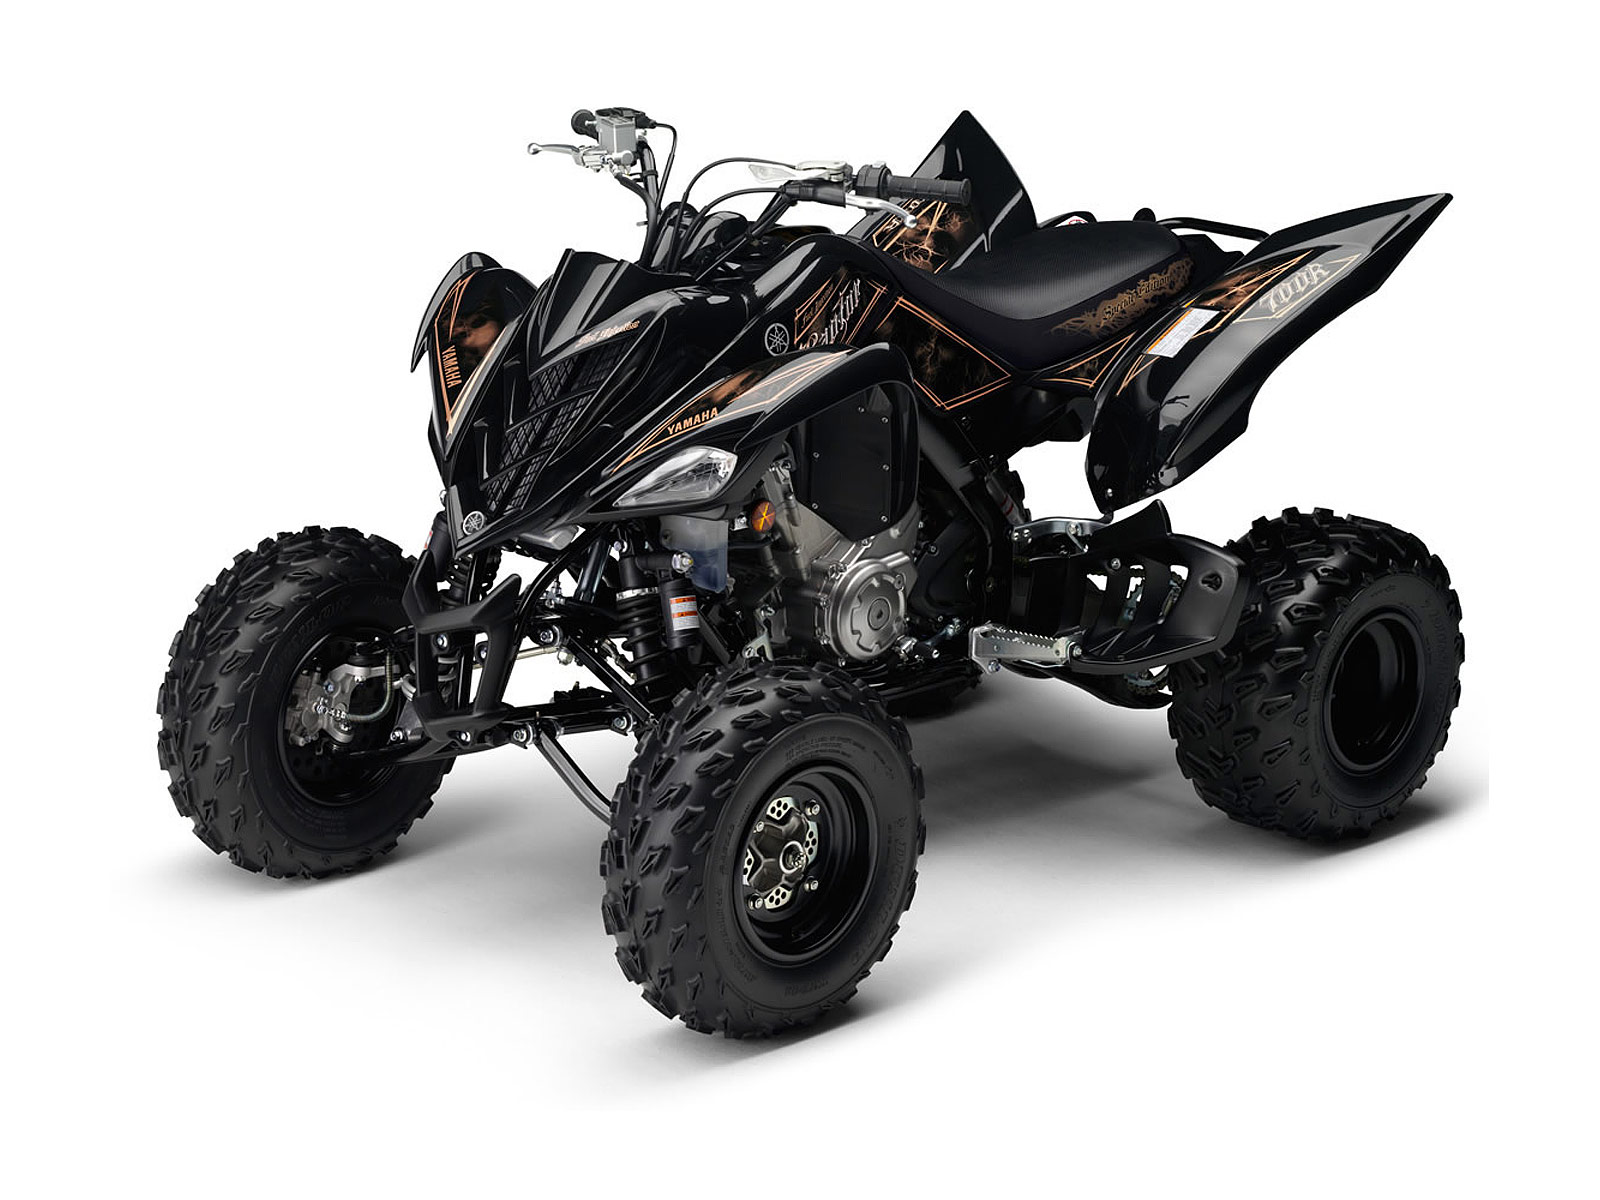 2012 yamaha raptor 700r se atv pictures specifications. Black Bedroom Furniture Sets. Home Design Ideas